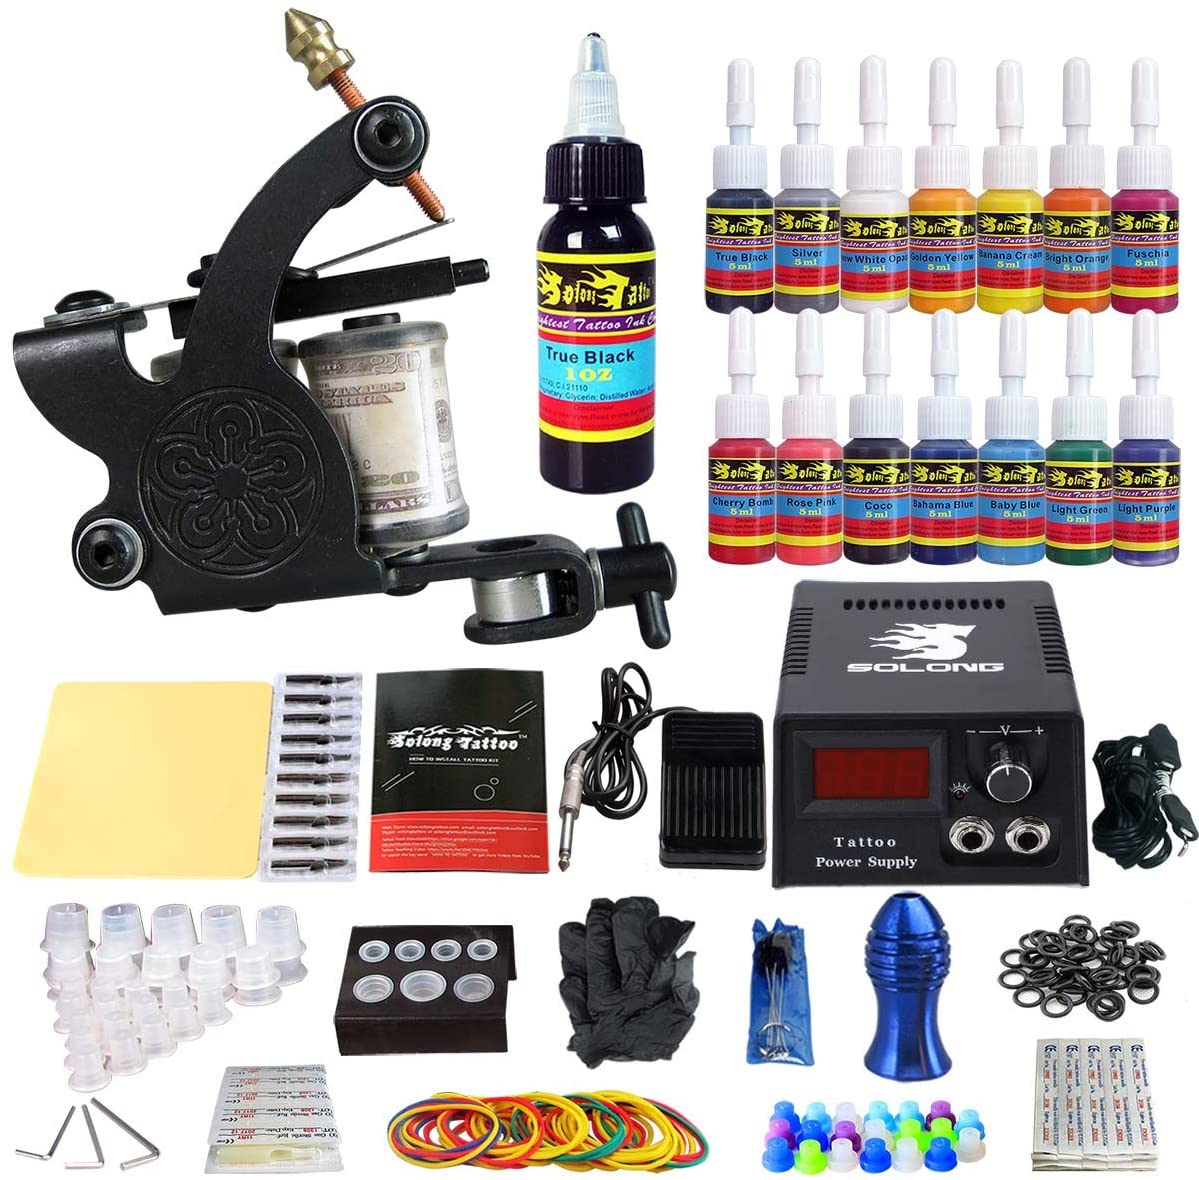 Solong Tattoo Complete Starter Tattoo Kit 1 Pro Machine Guns Review